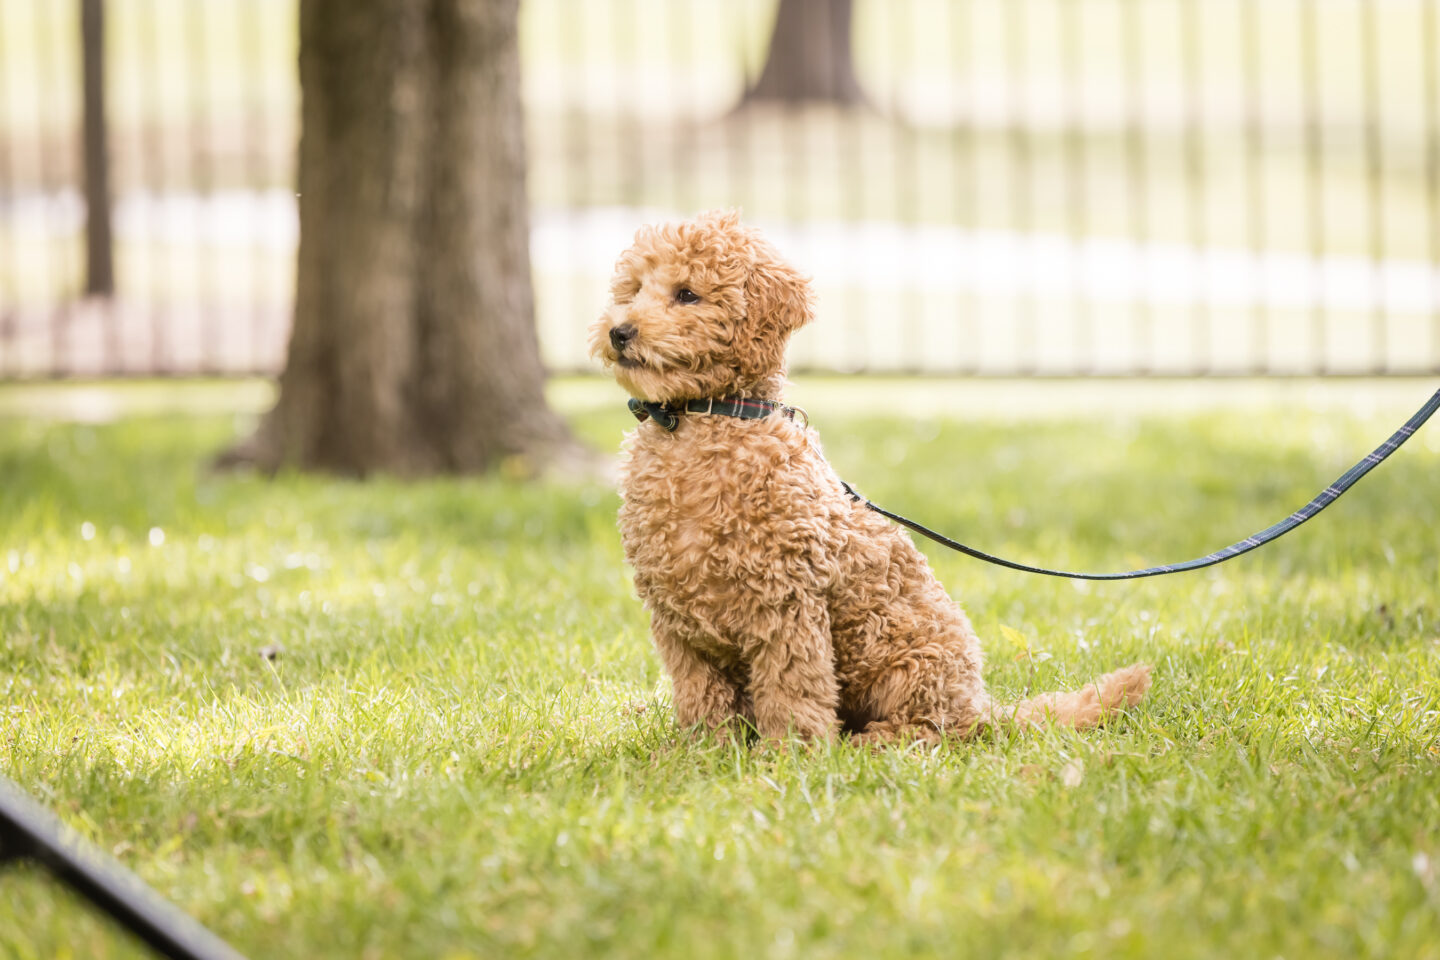 Goldendoodle Puppy, New Puppy Cuteness, Copper Canyon Doodles |Charlie Cupcake by popular Dallas lifestyle blog, Pretty Little Shoppers: image of a goldendoodle puppy.